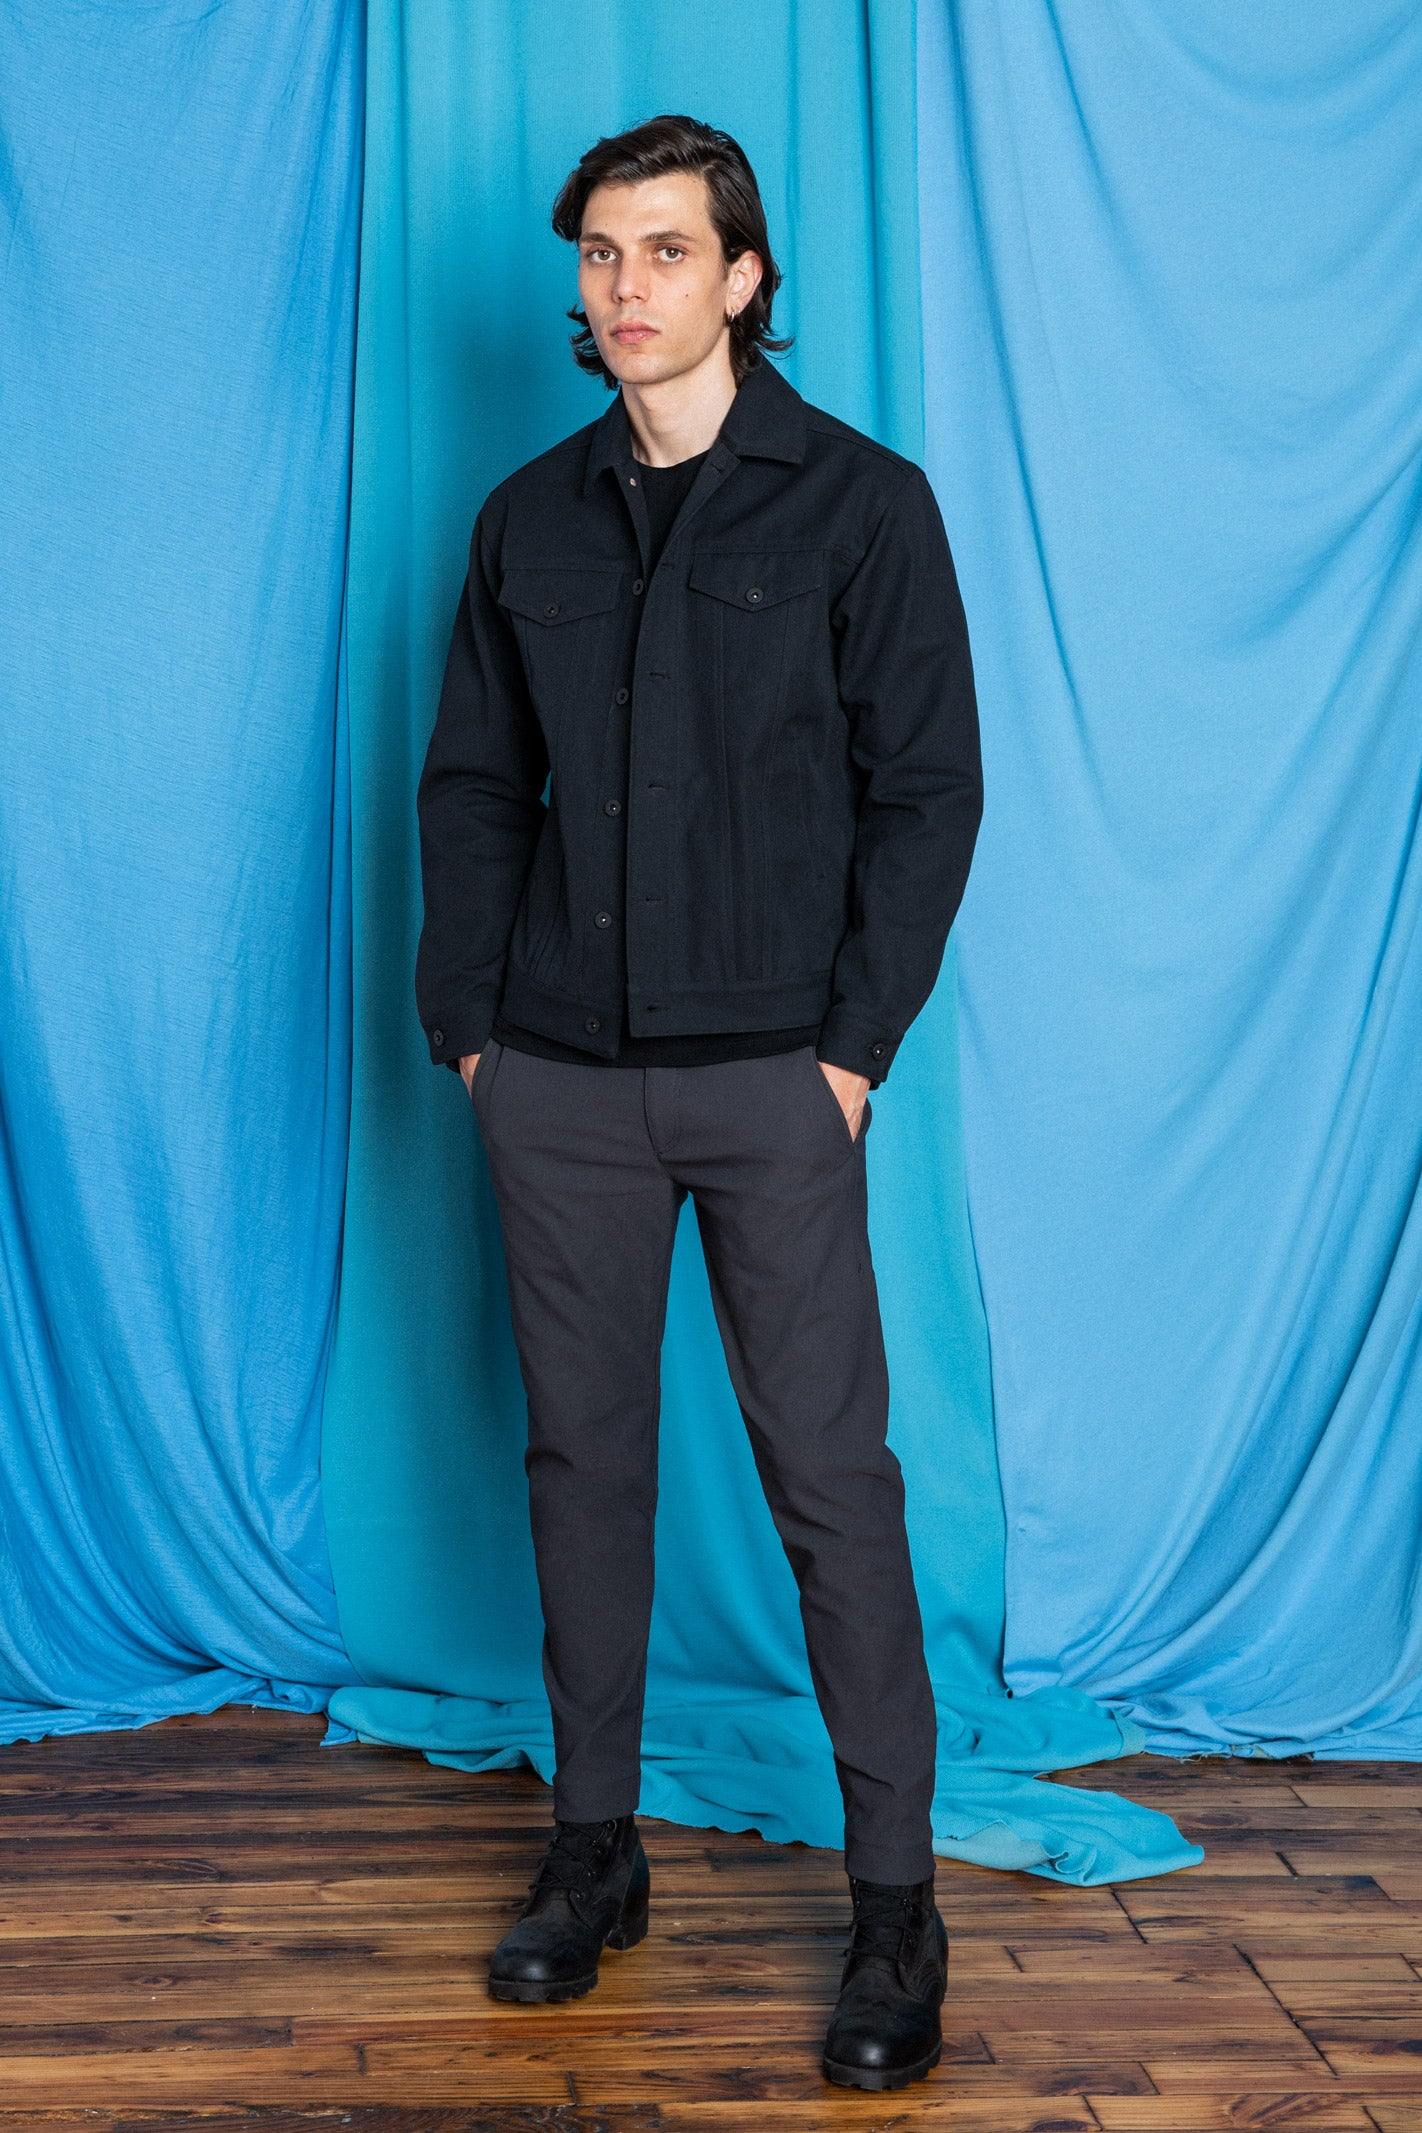 Full fit image of Daniele wearing the Experiment 249 - Duckcloth Shank Jacket in Black